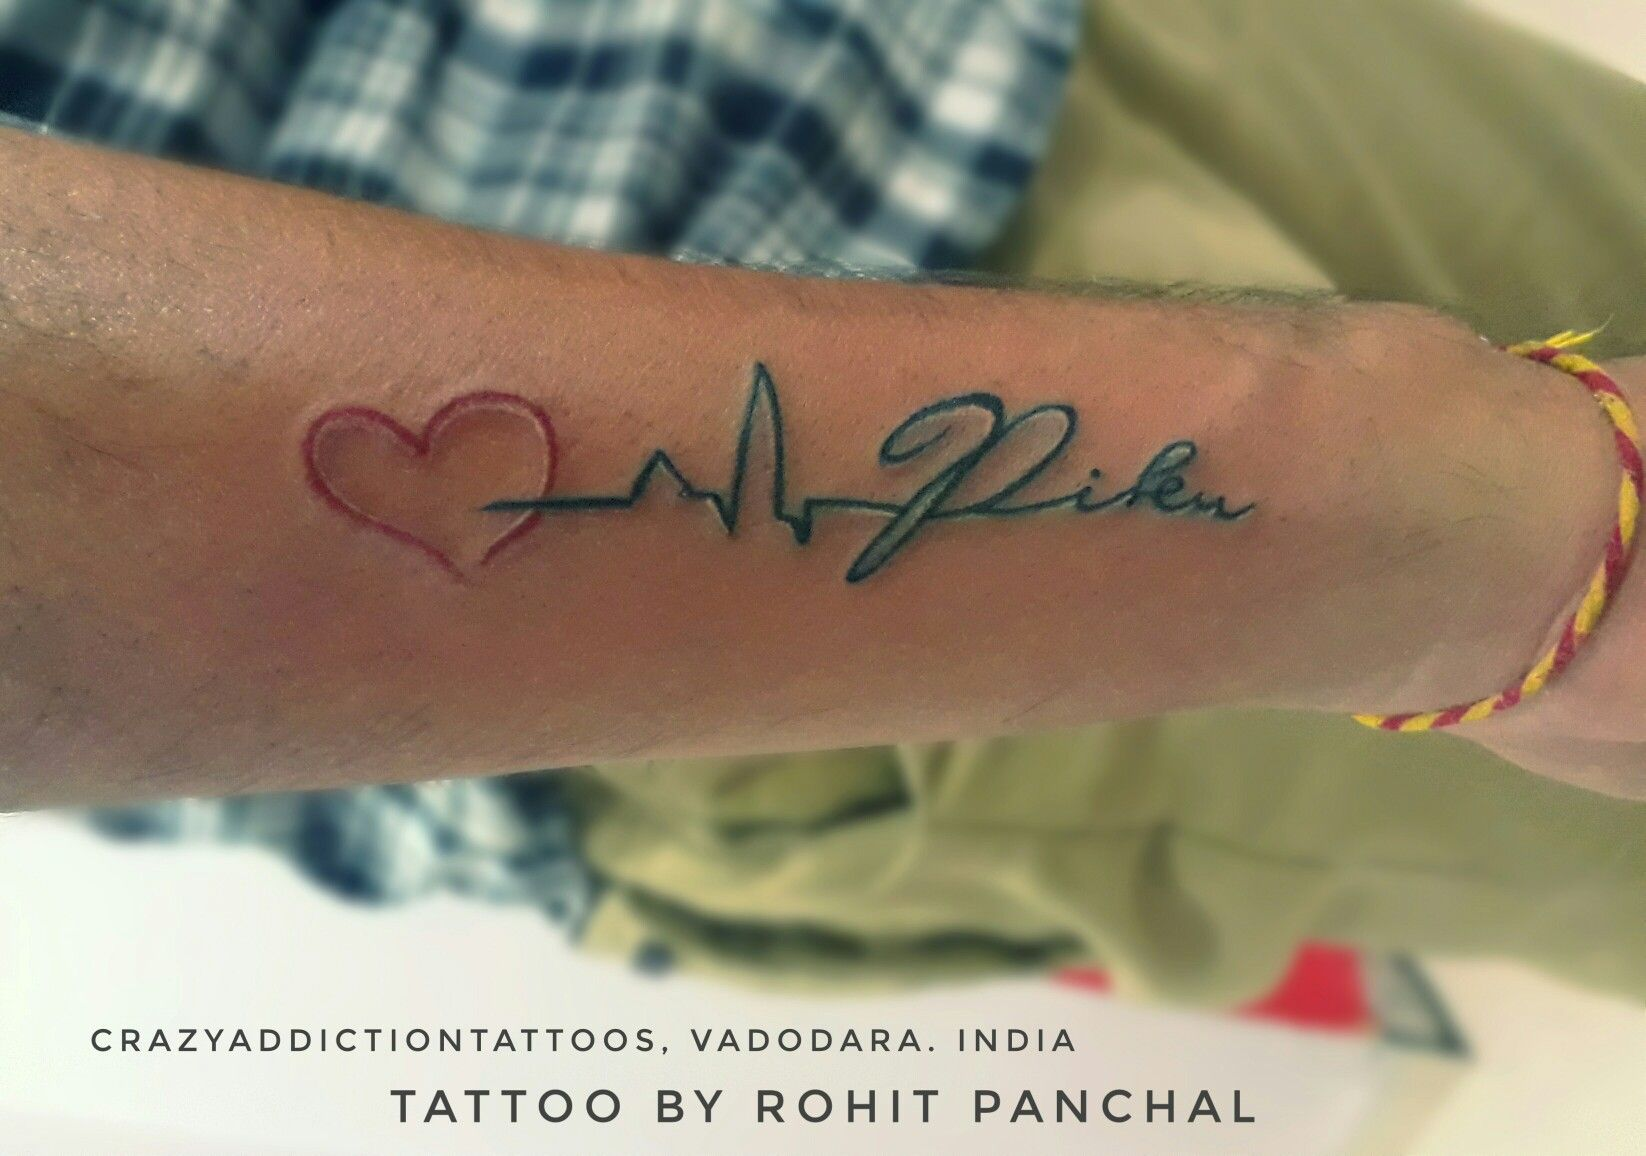 Heartbeat With Pinku Name Tattoo By Rohit Panchal At Crazyaddictiontattoos Name Tattoos Beautiful Meaningful Tattoos Tattoo Designs